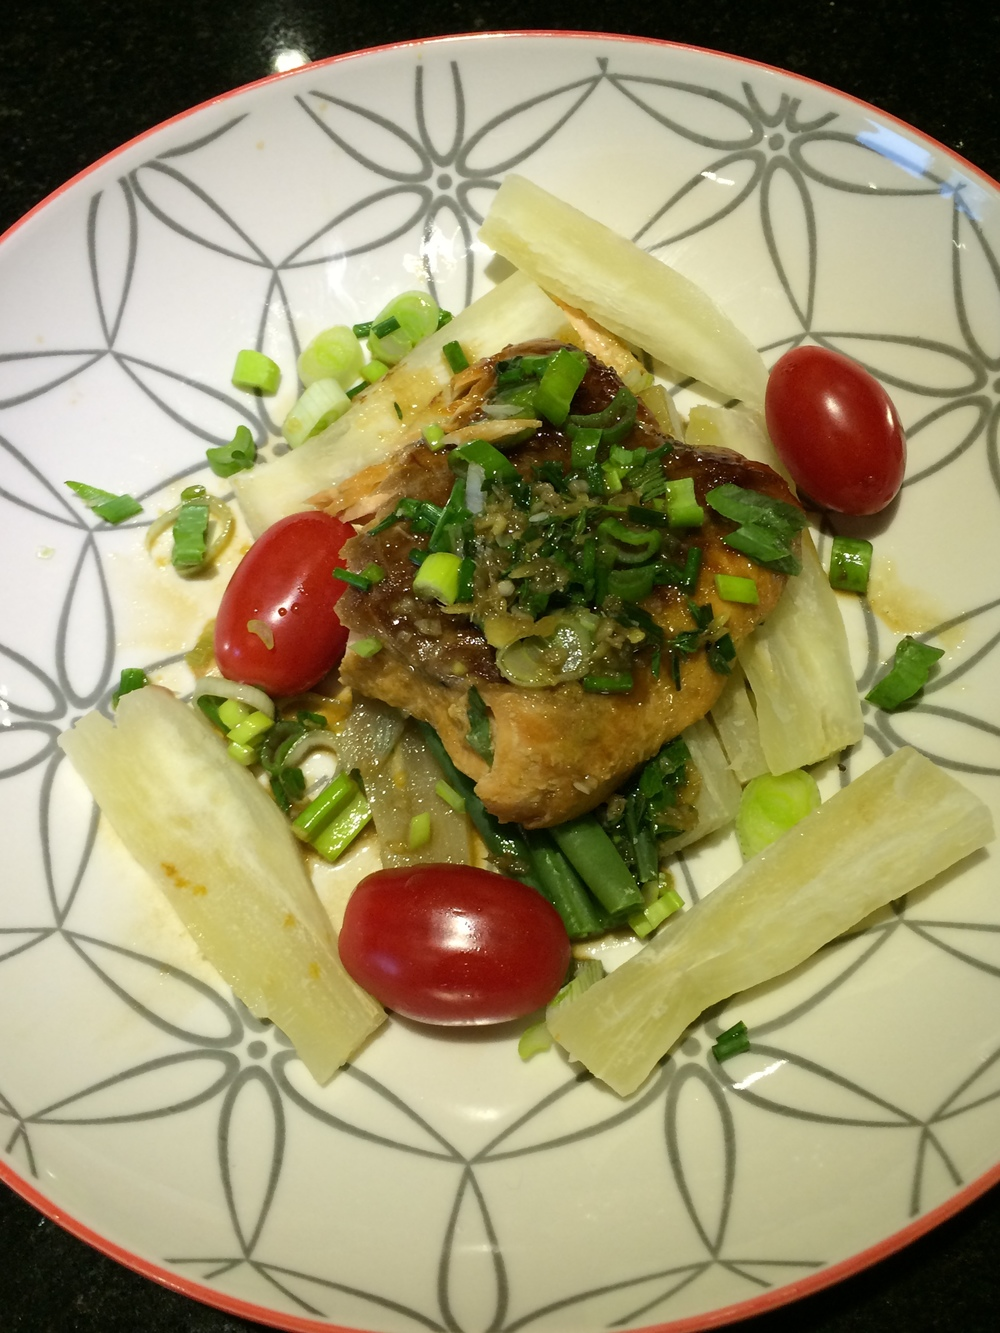 AFRICAN CASSAVA & SALMON SALAD WITH VINAIGRETTE DRESSING